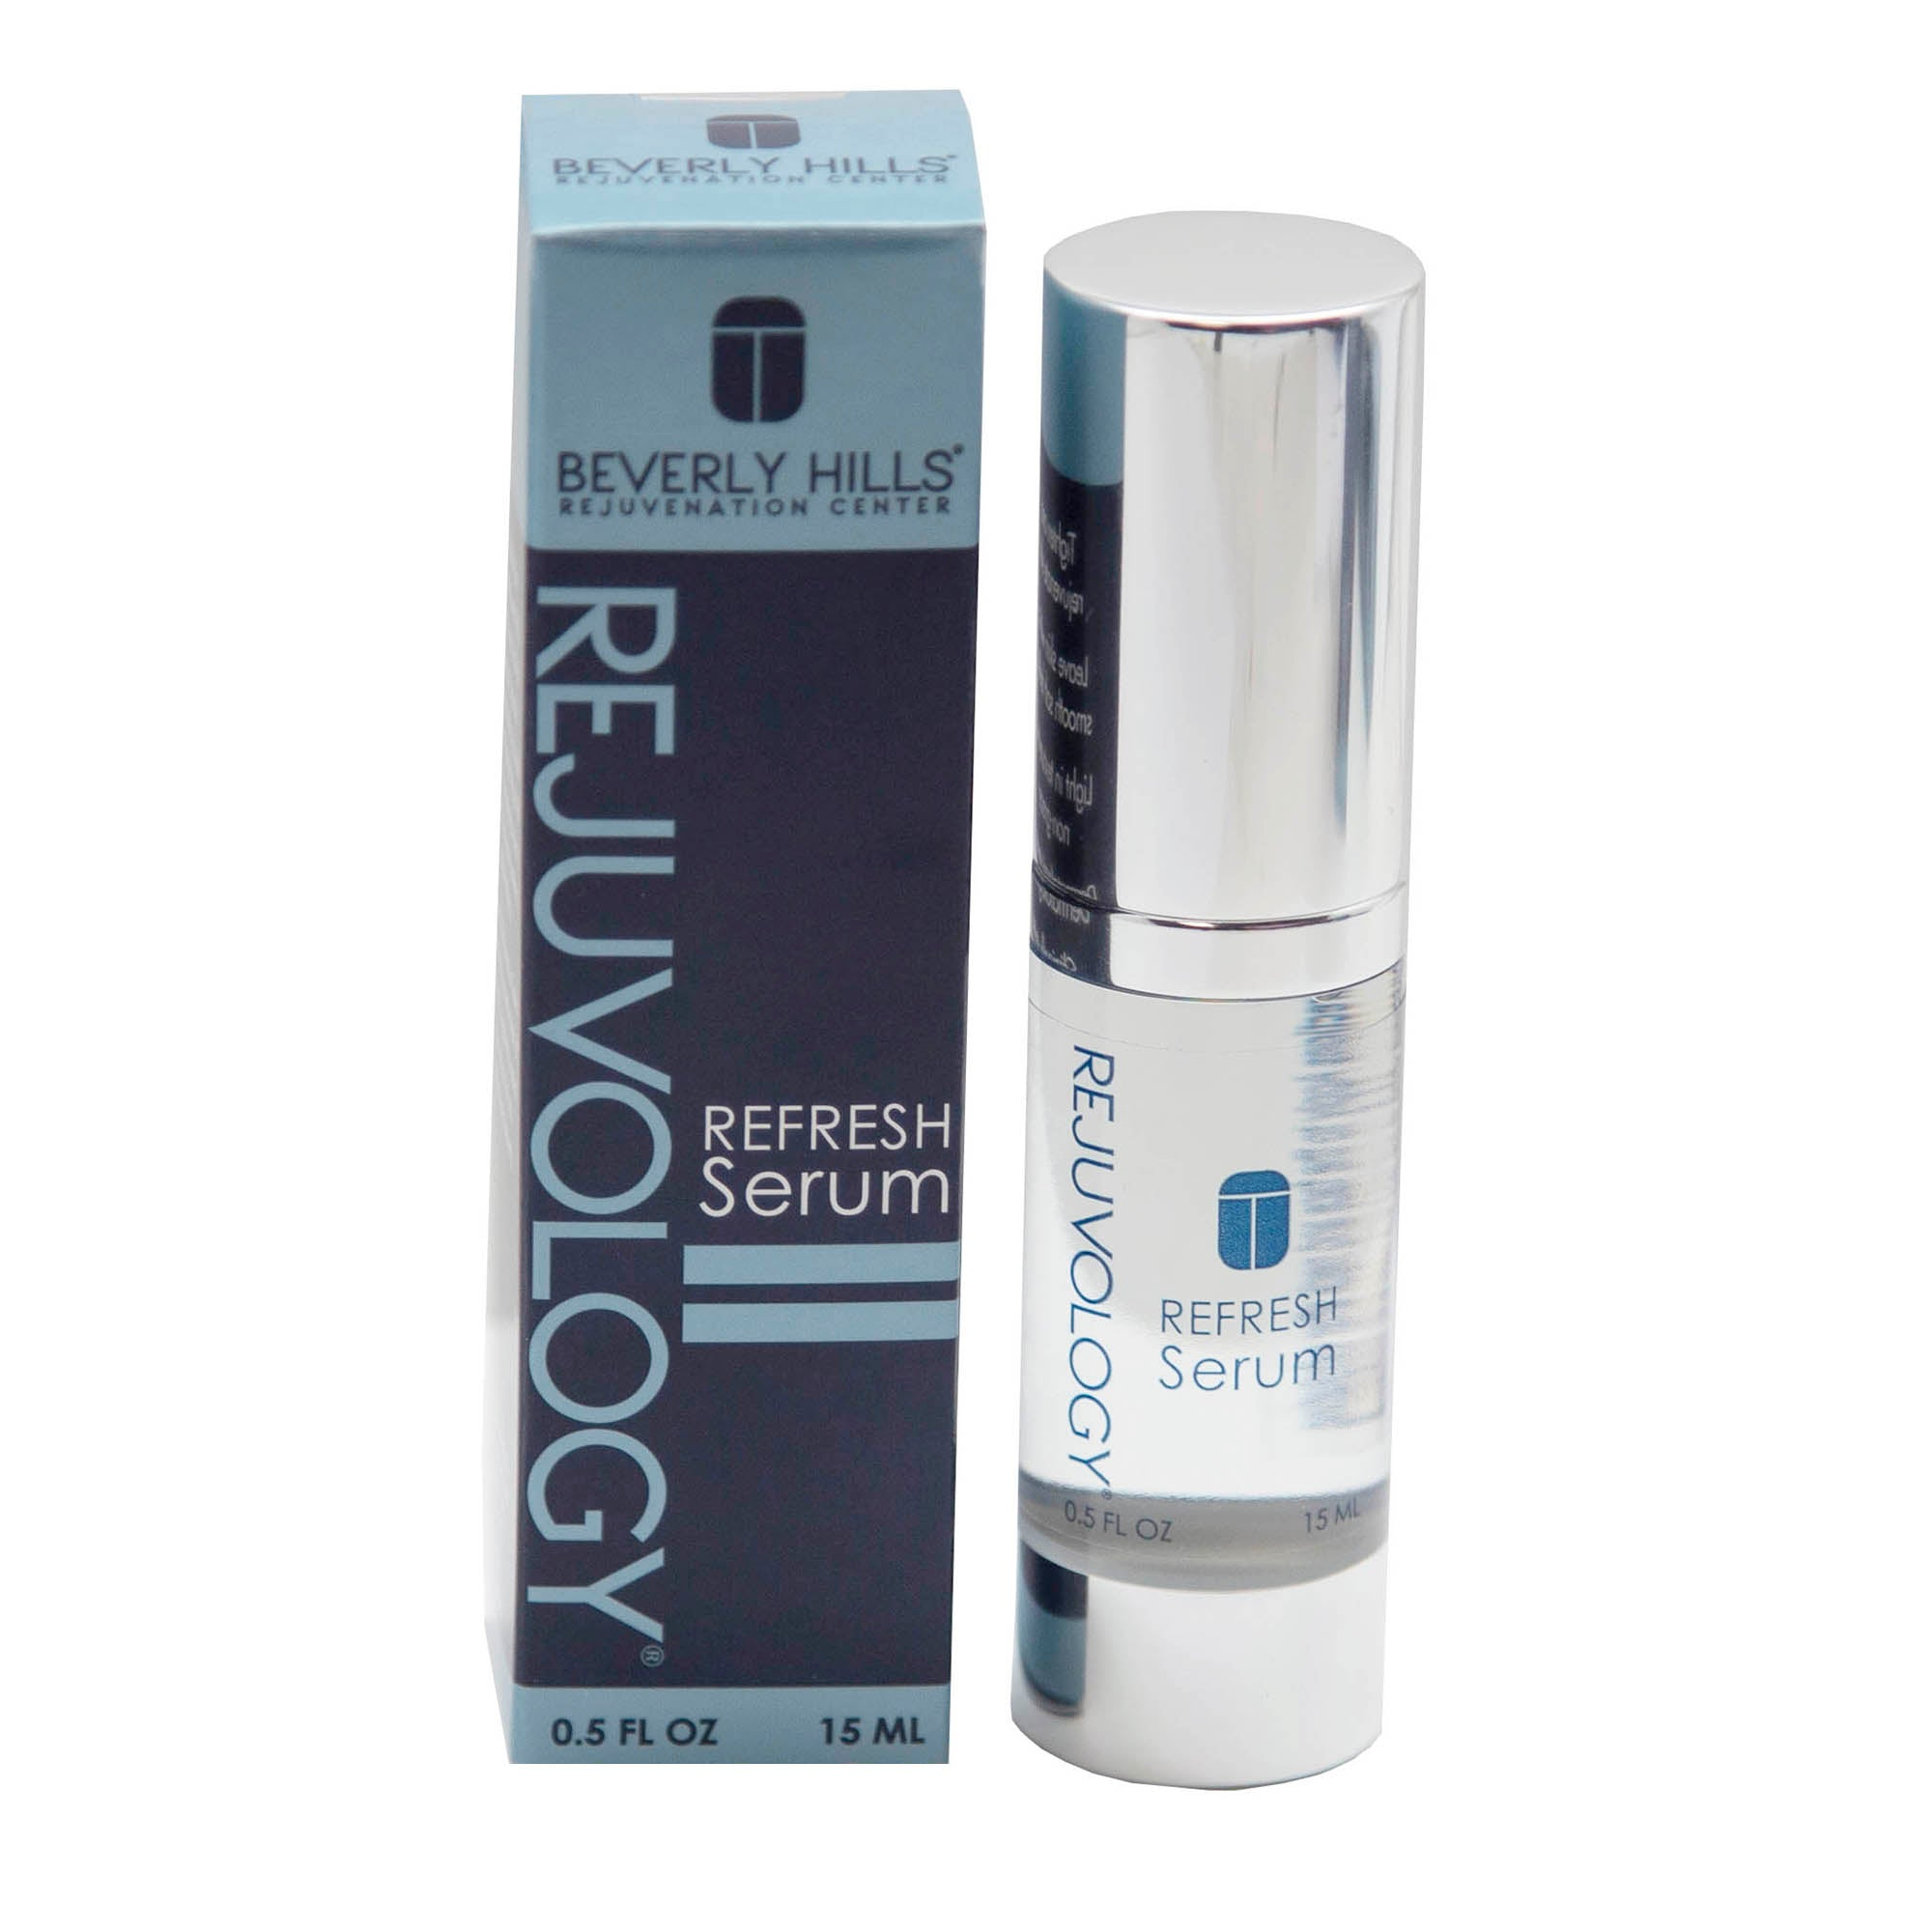 Beverly Hills Rejuvenation Center Refresh Serum